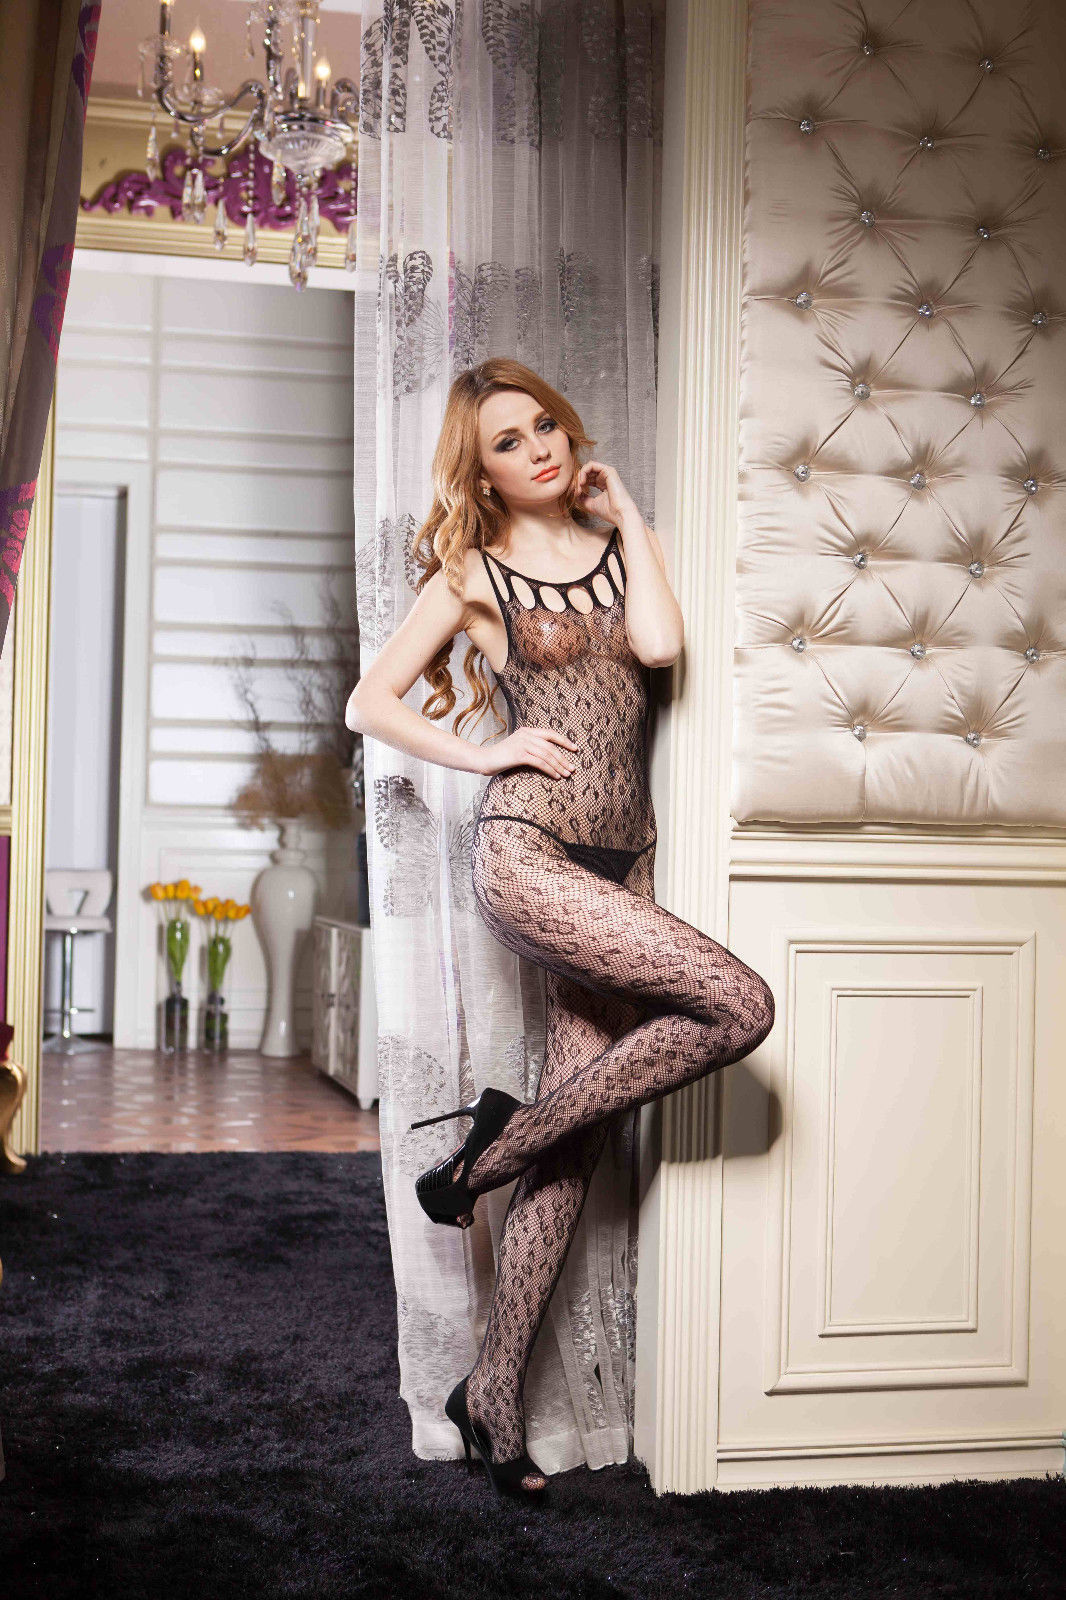 Fishnet Full Body Stocking - Free size - Different Styles image 2